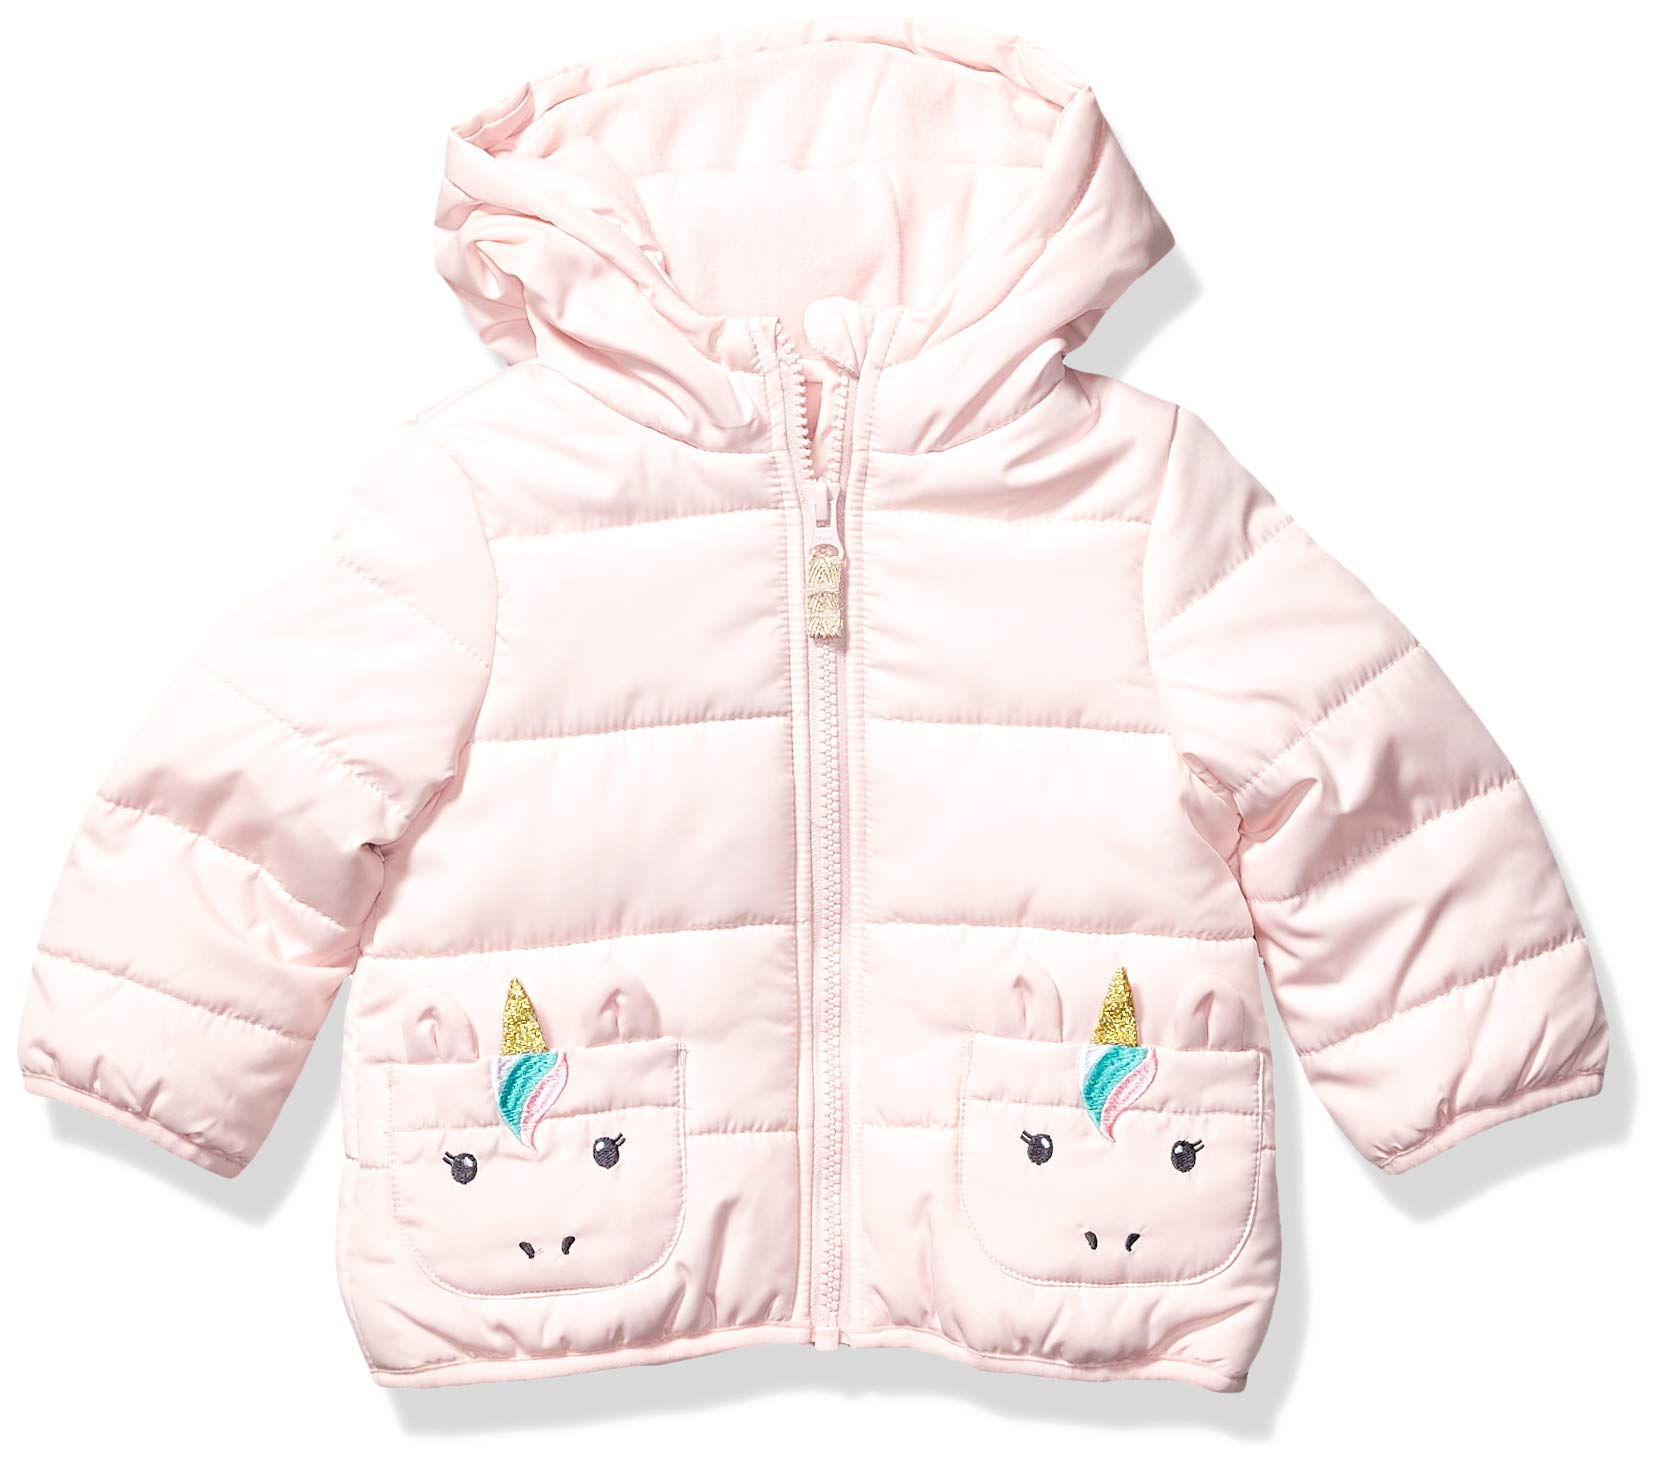 Carter's Baby Girls Fleece Lined Critter Puffer Jacket Coat, Pink Unicorn, 18 Months by Carter's